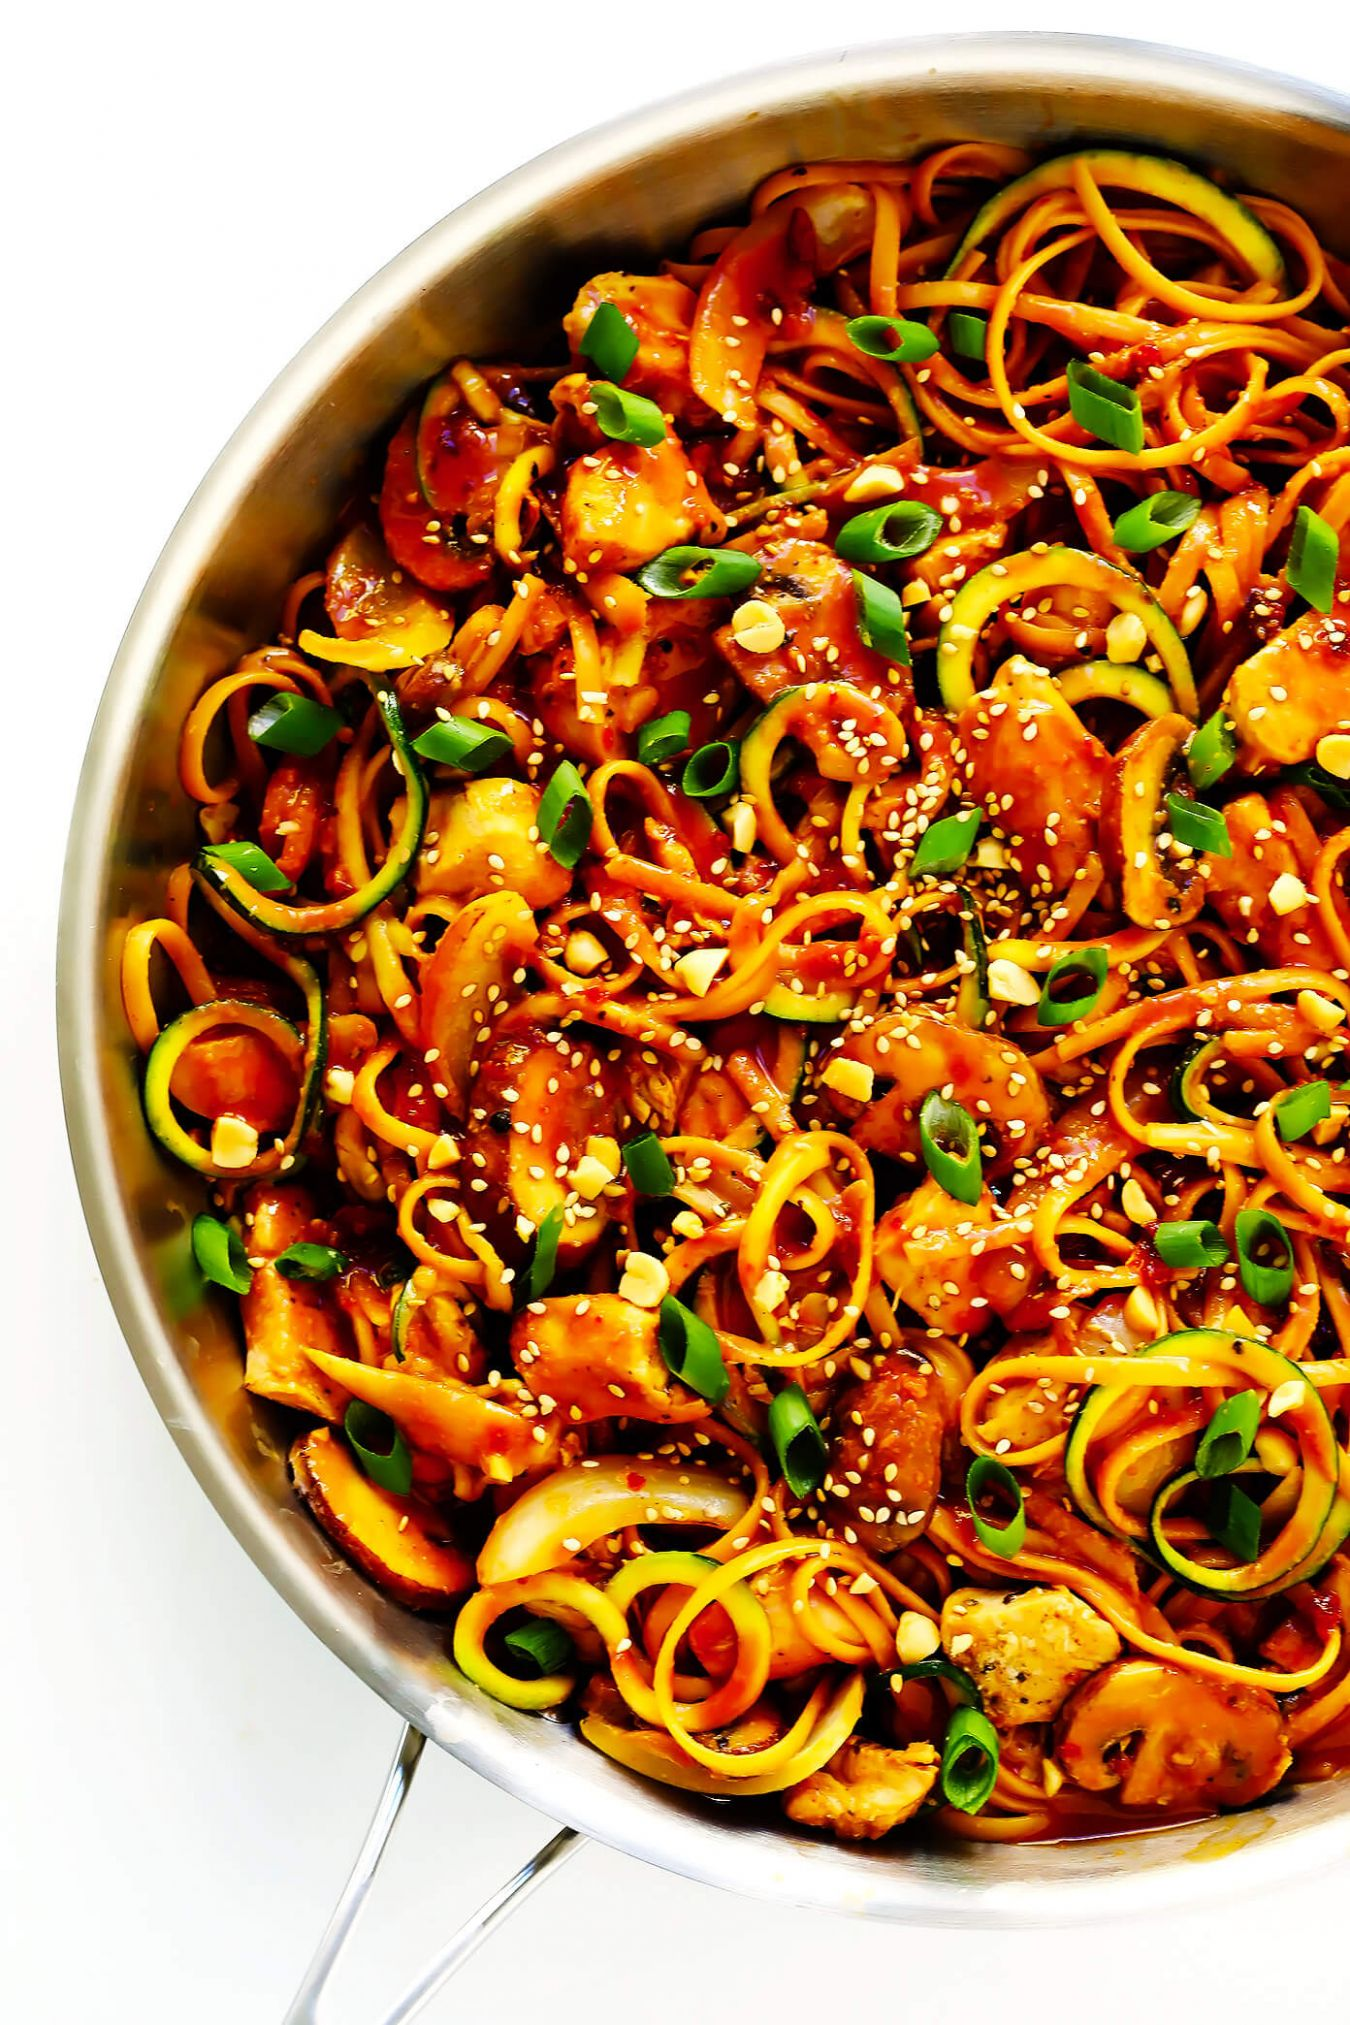 Kung Pao Chicken Noodle Stir-Fry - Recipes Chicken Noodles